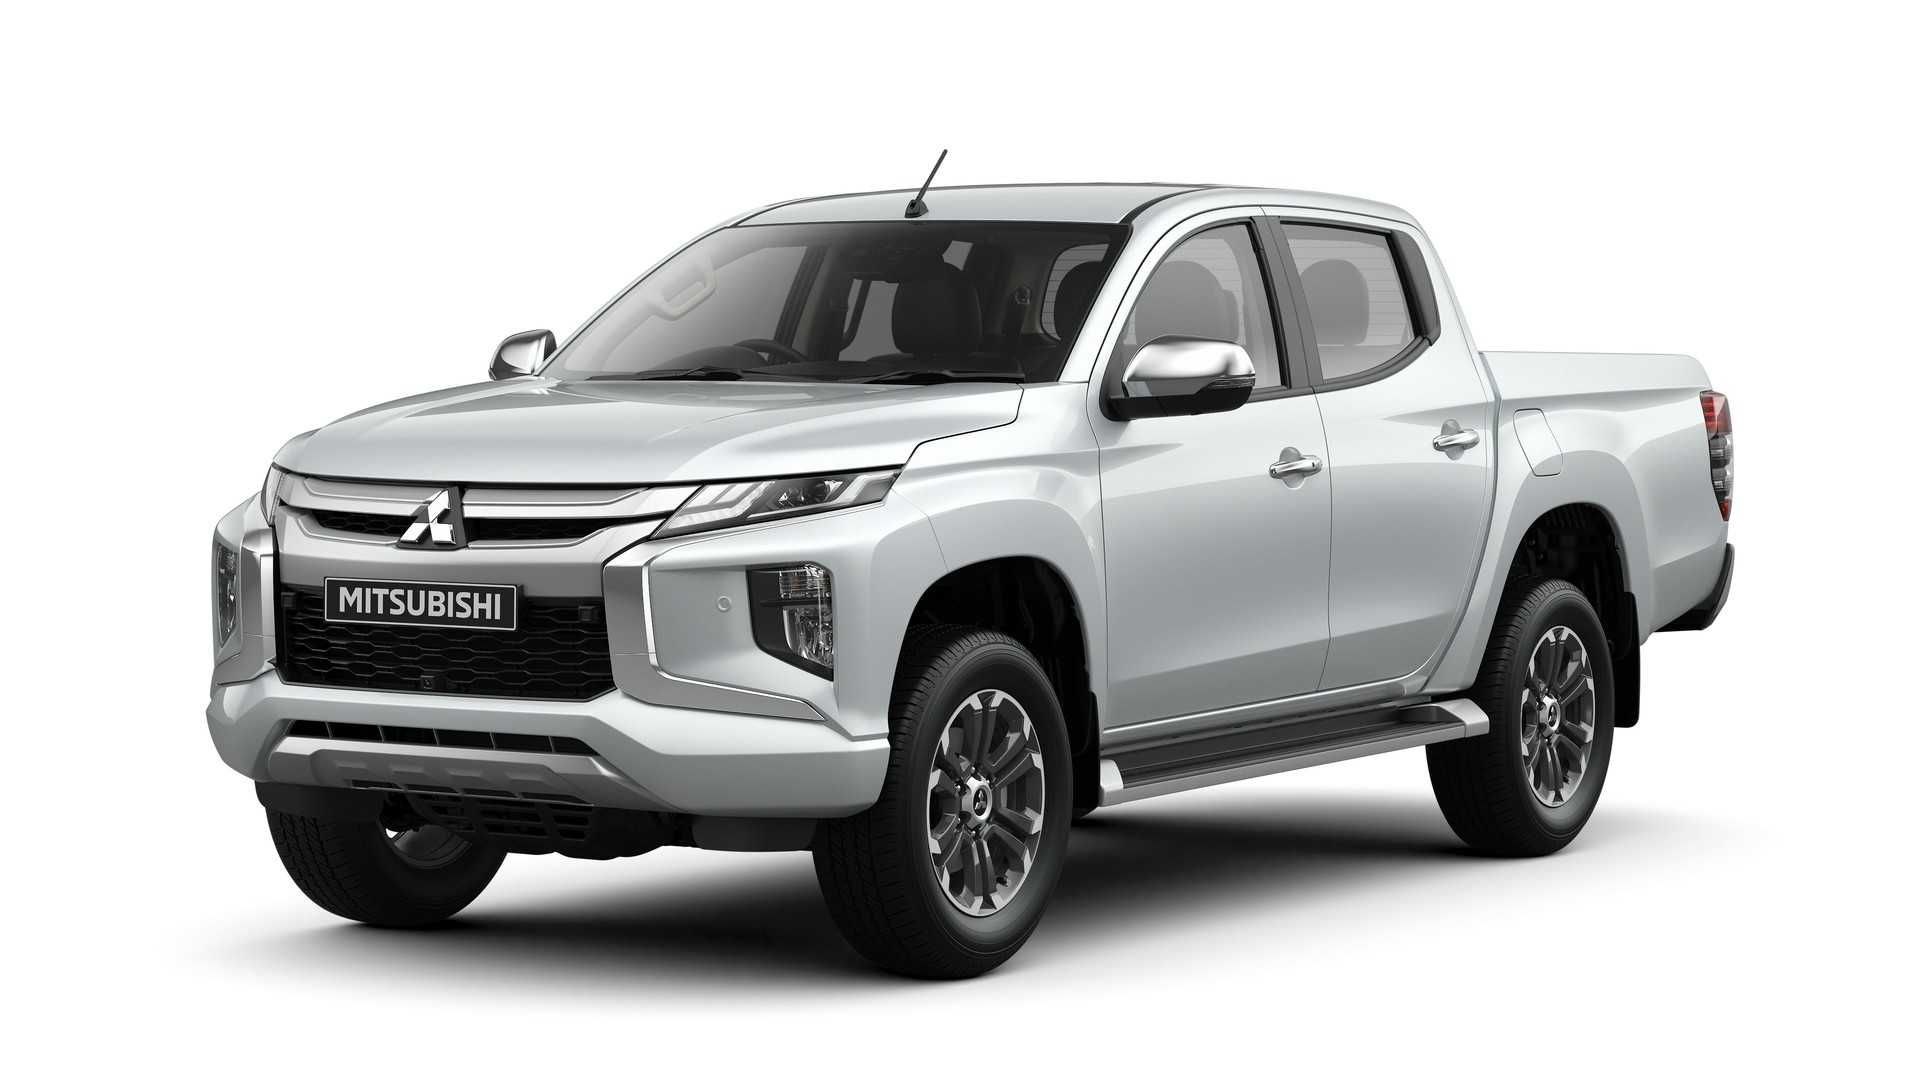 2019 Mitsubishi L200 Triton Facelift Revealed With Bold Design